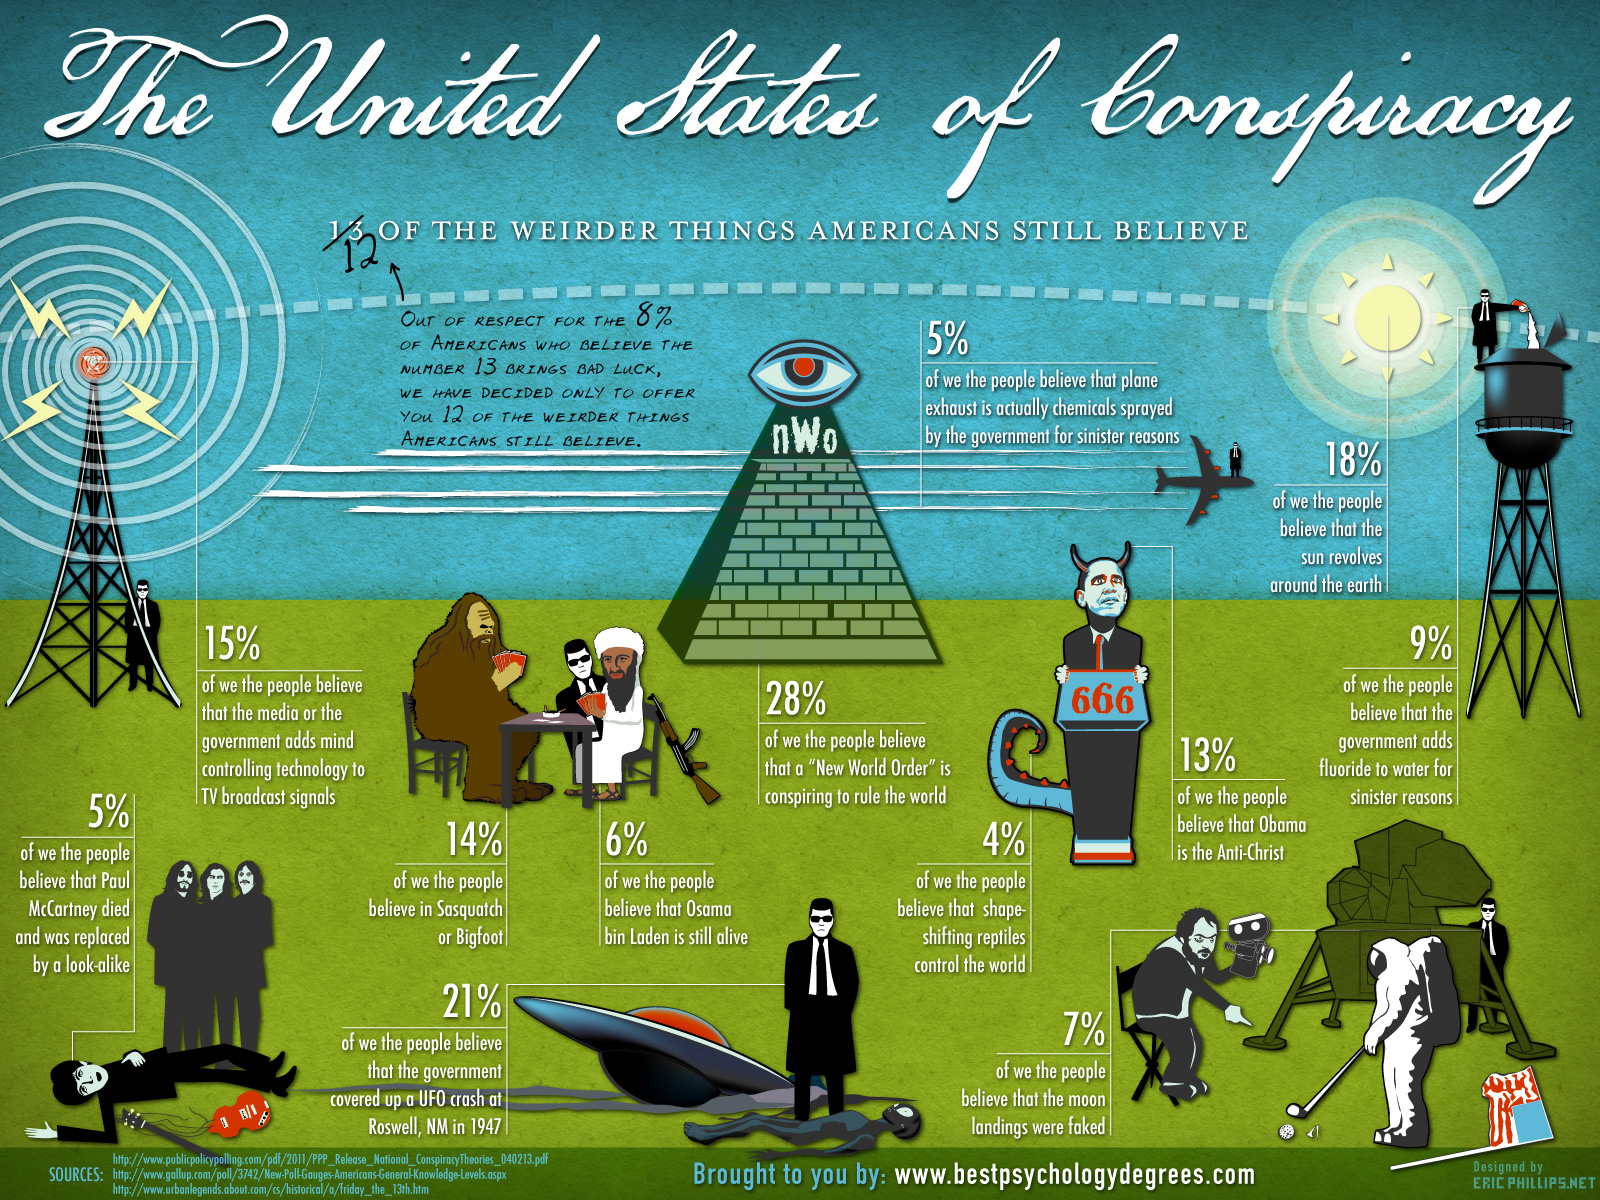 http://gnosticwarrior.com/wp-content/uploads/2013/08/meaning-of-conspiracy.jpg